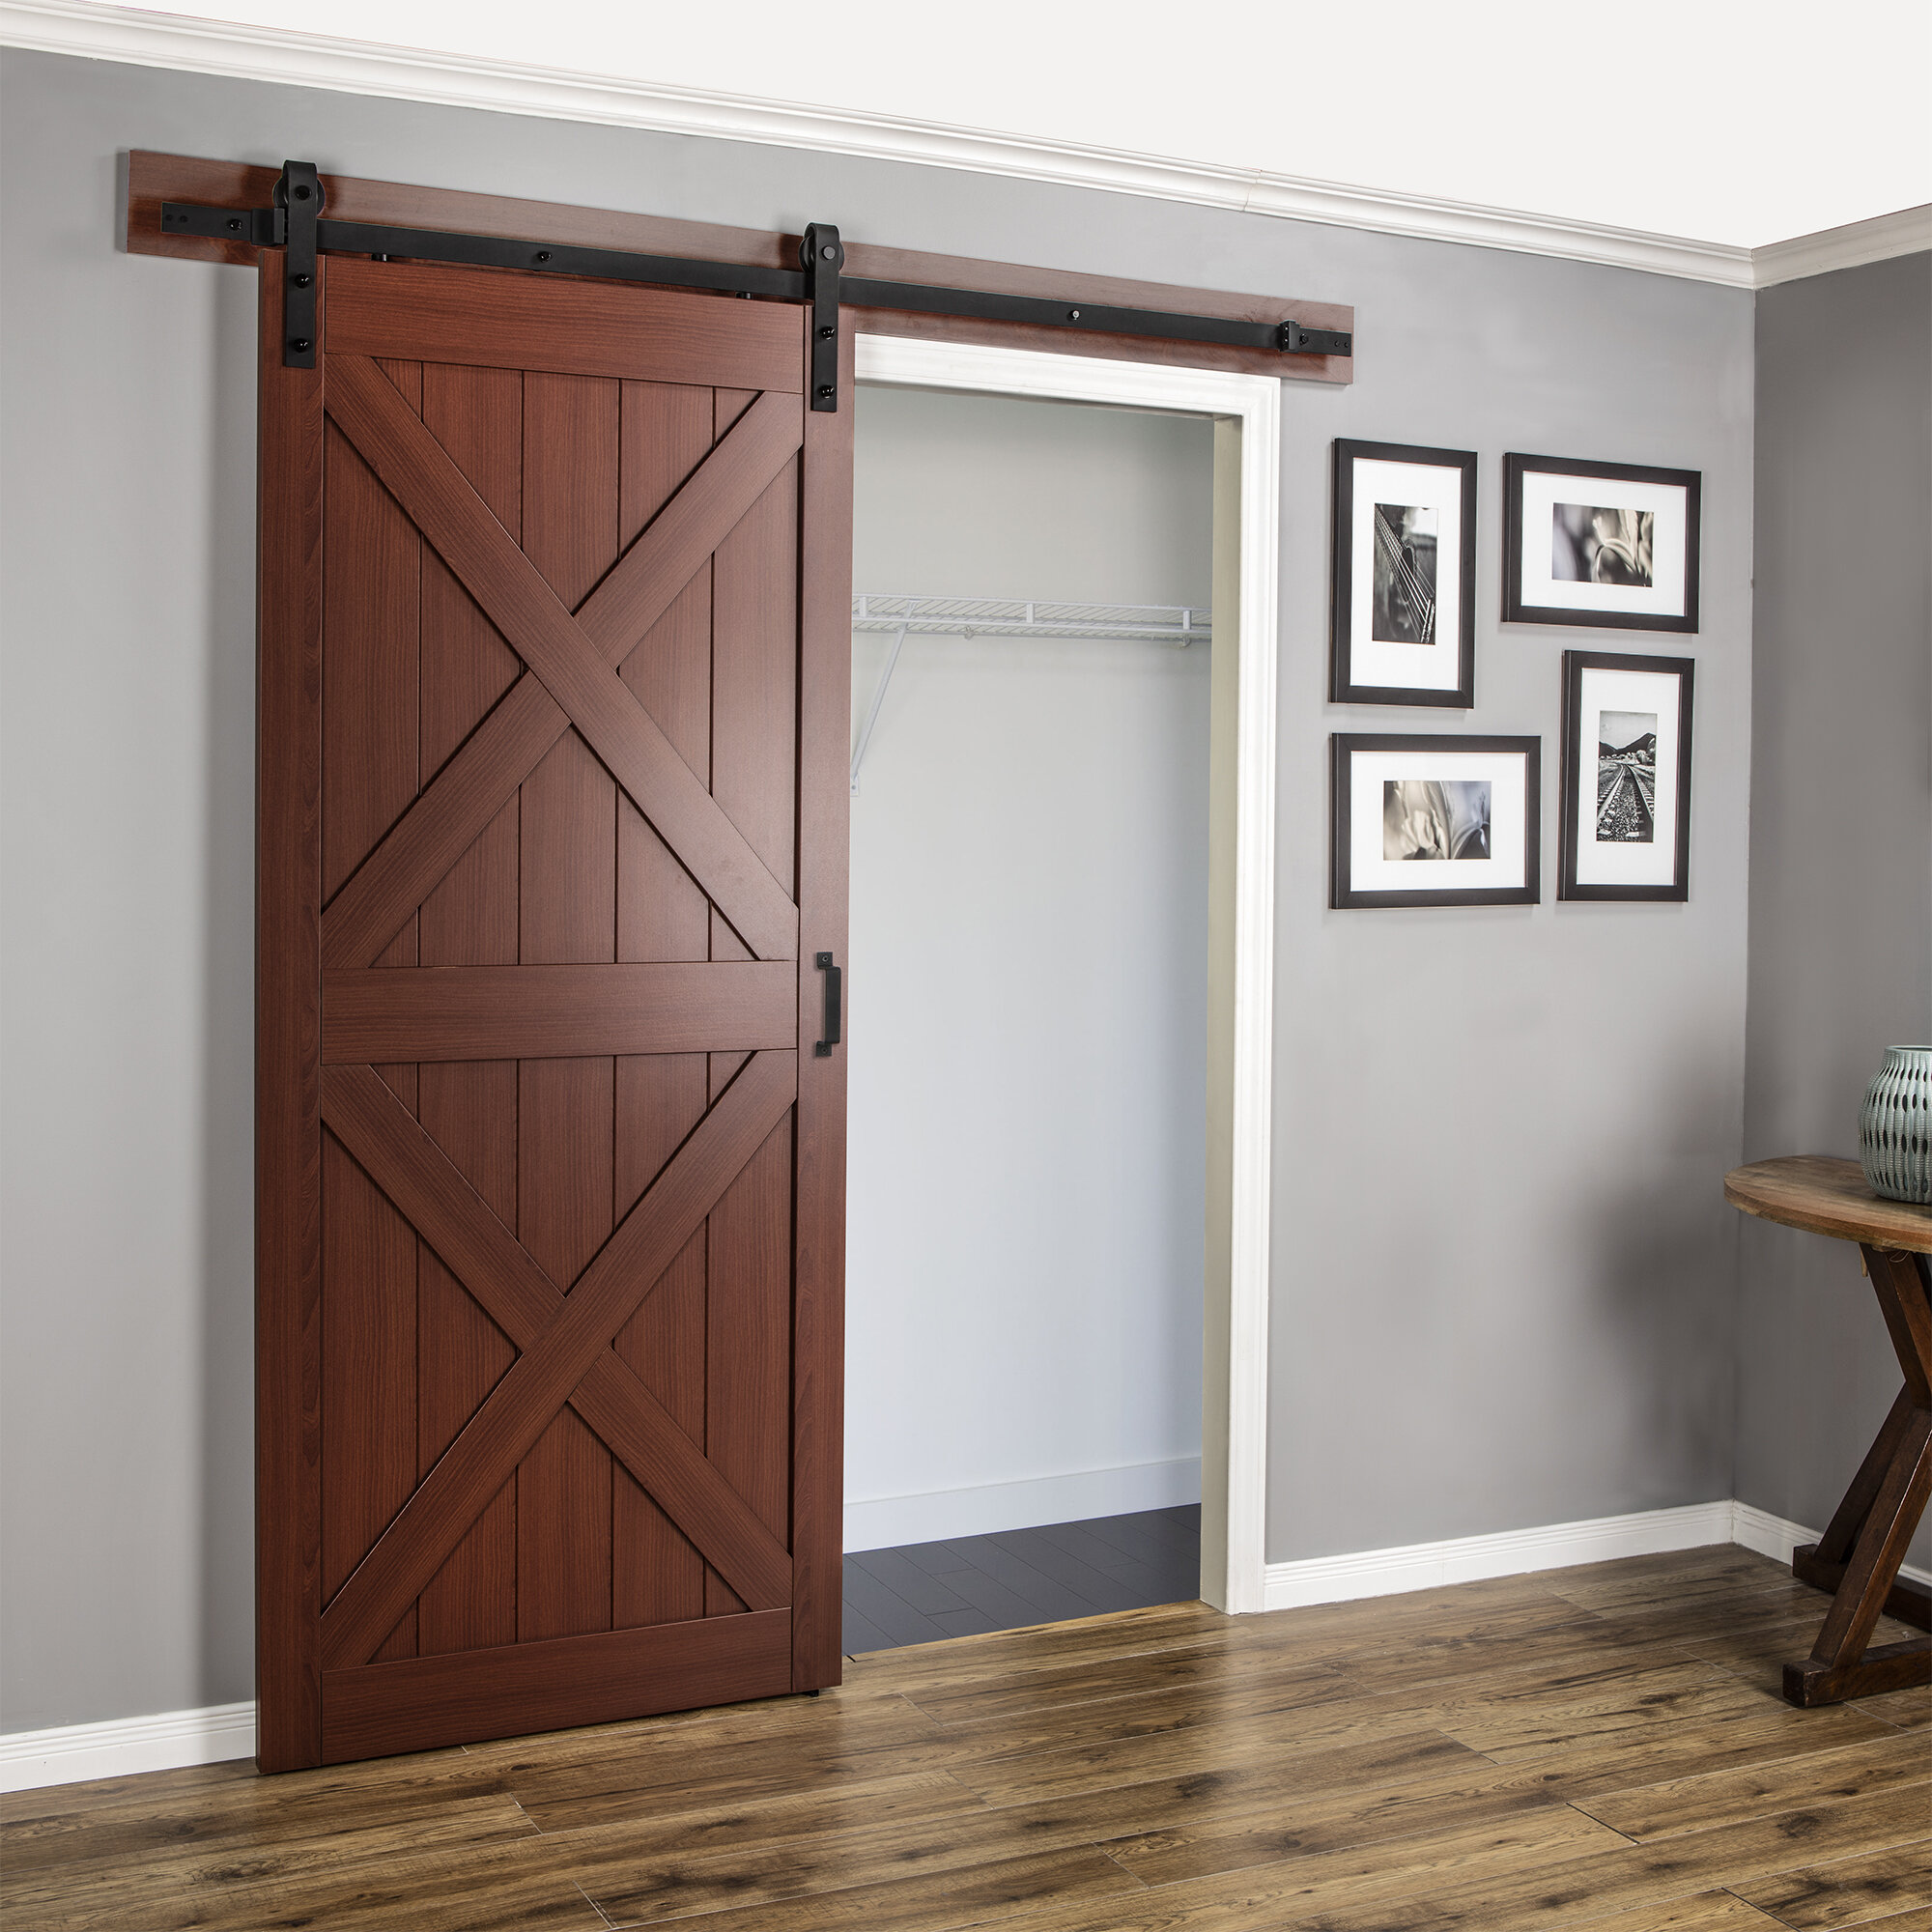 Erias Home Designs Continental MDF Engineered Wood 1 Panel Cherry Laminate Interior Barn Door Reviews